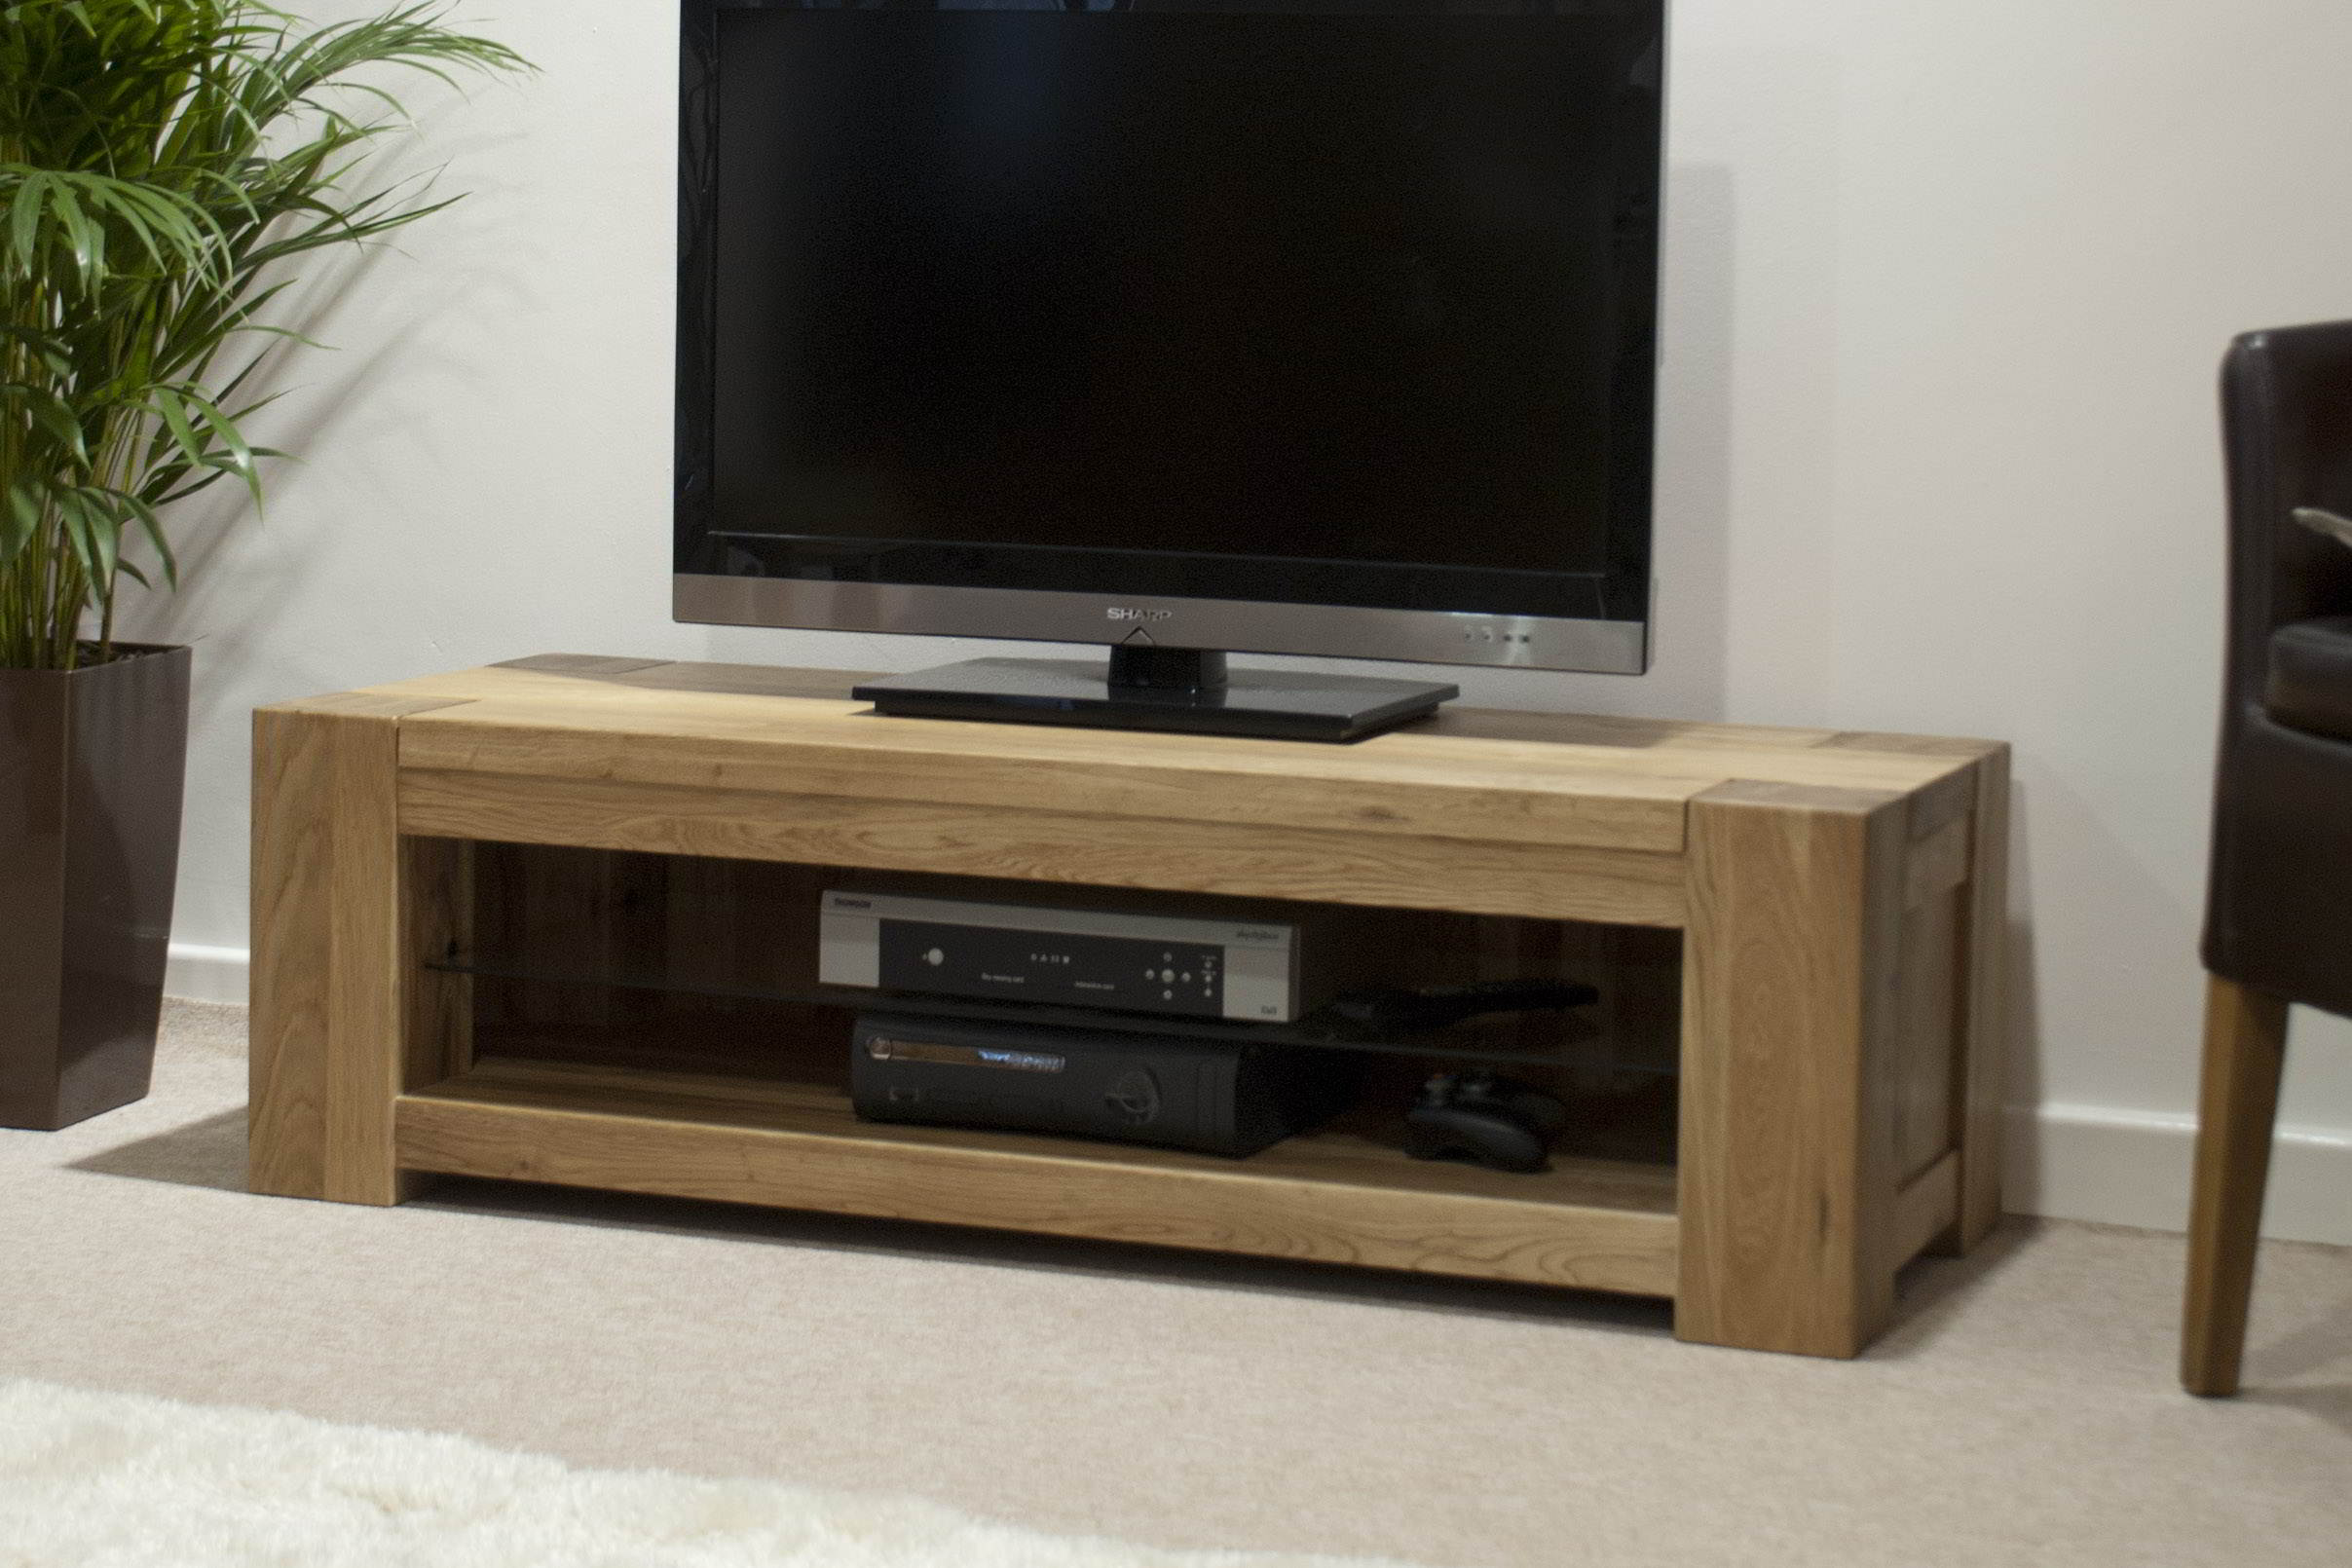 Padova solid oak furniture plasma television cabinet stand for Stylish tv stands furniture